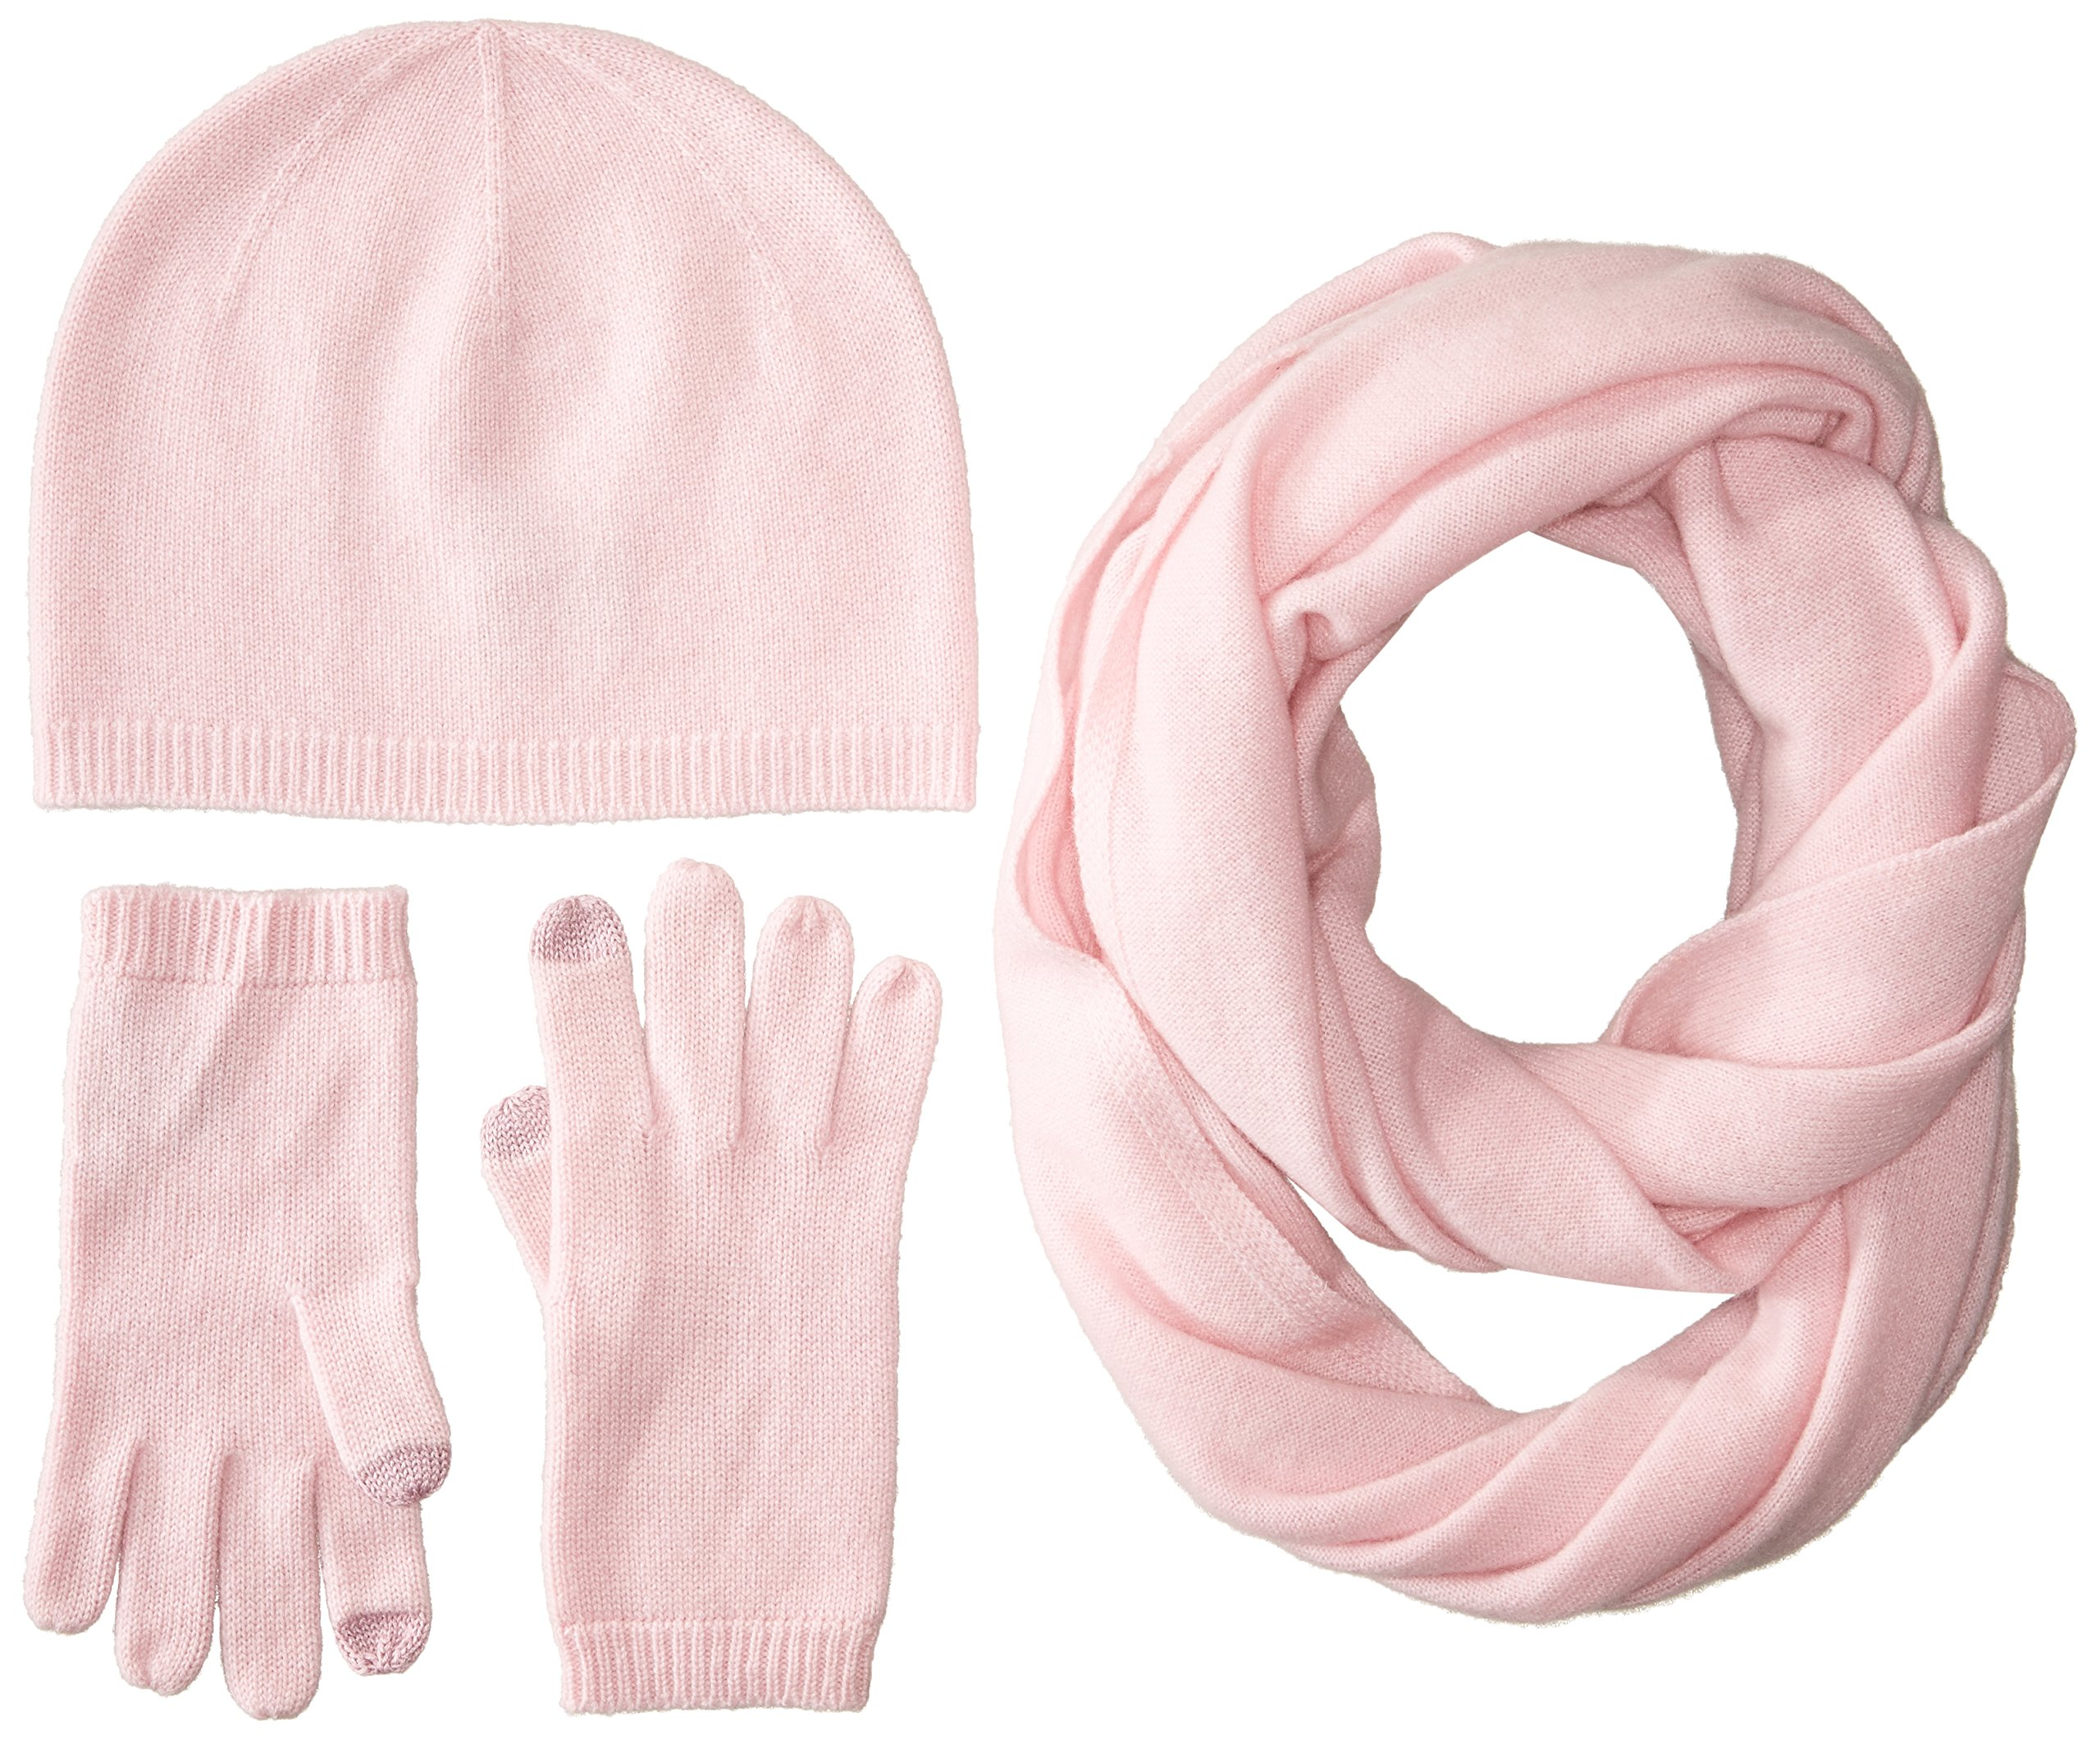 Sofia Cashmere Women's Gift Box Set-Hat, Smartphone Gloves, and Infinity Scarf, Pink, One